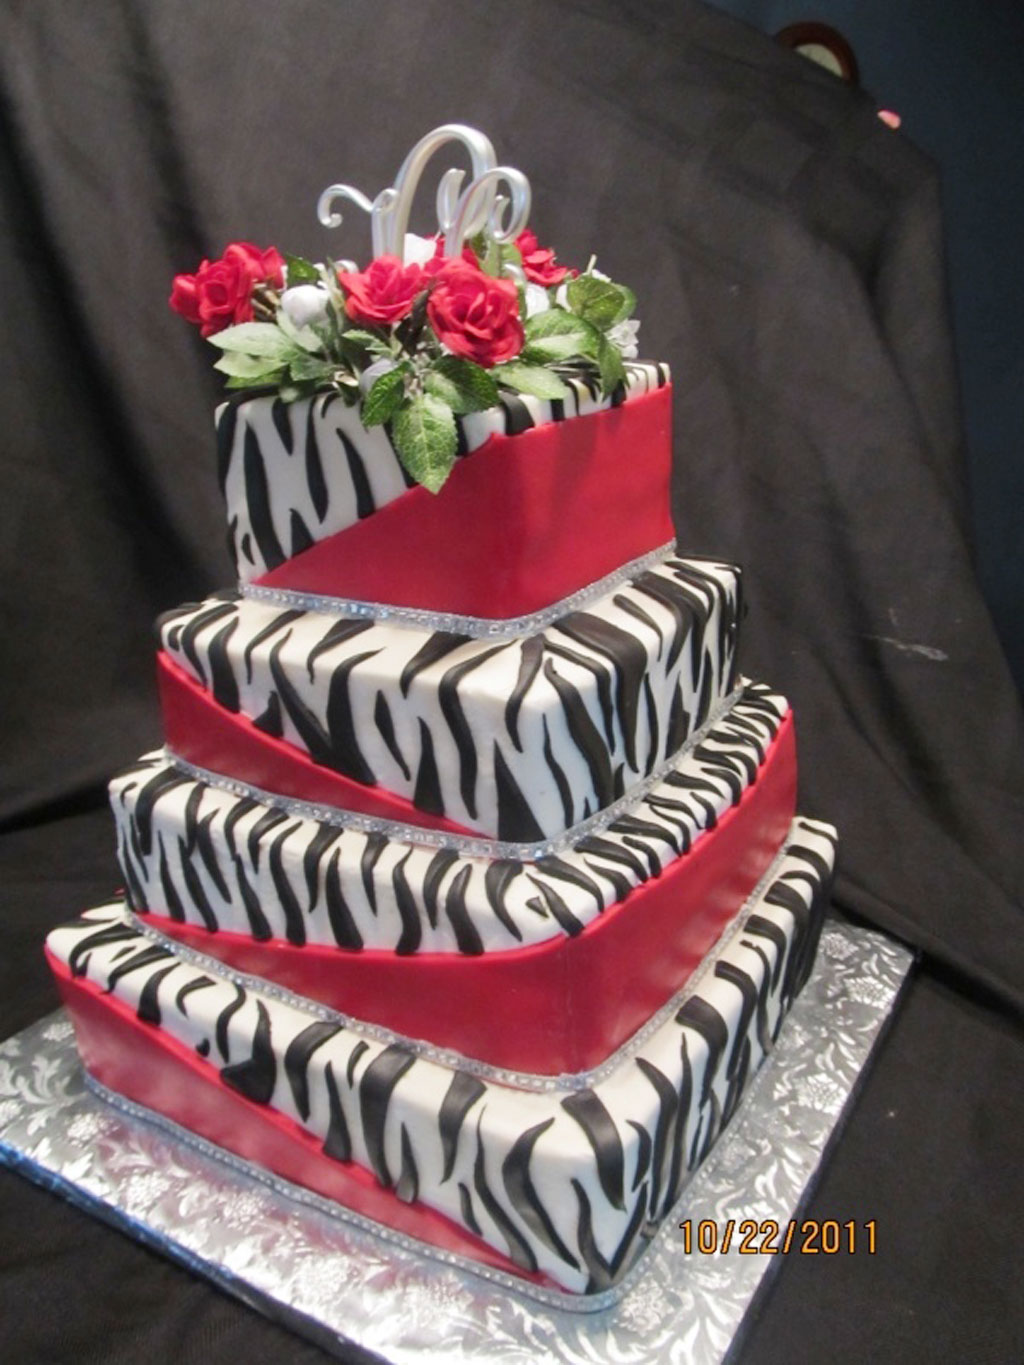 Cake With Zebra Design : Zebra Print Wedding Cake Design Wedding Cake - Cake Ideas ...